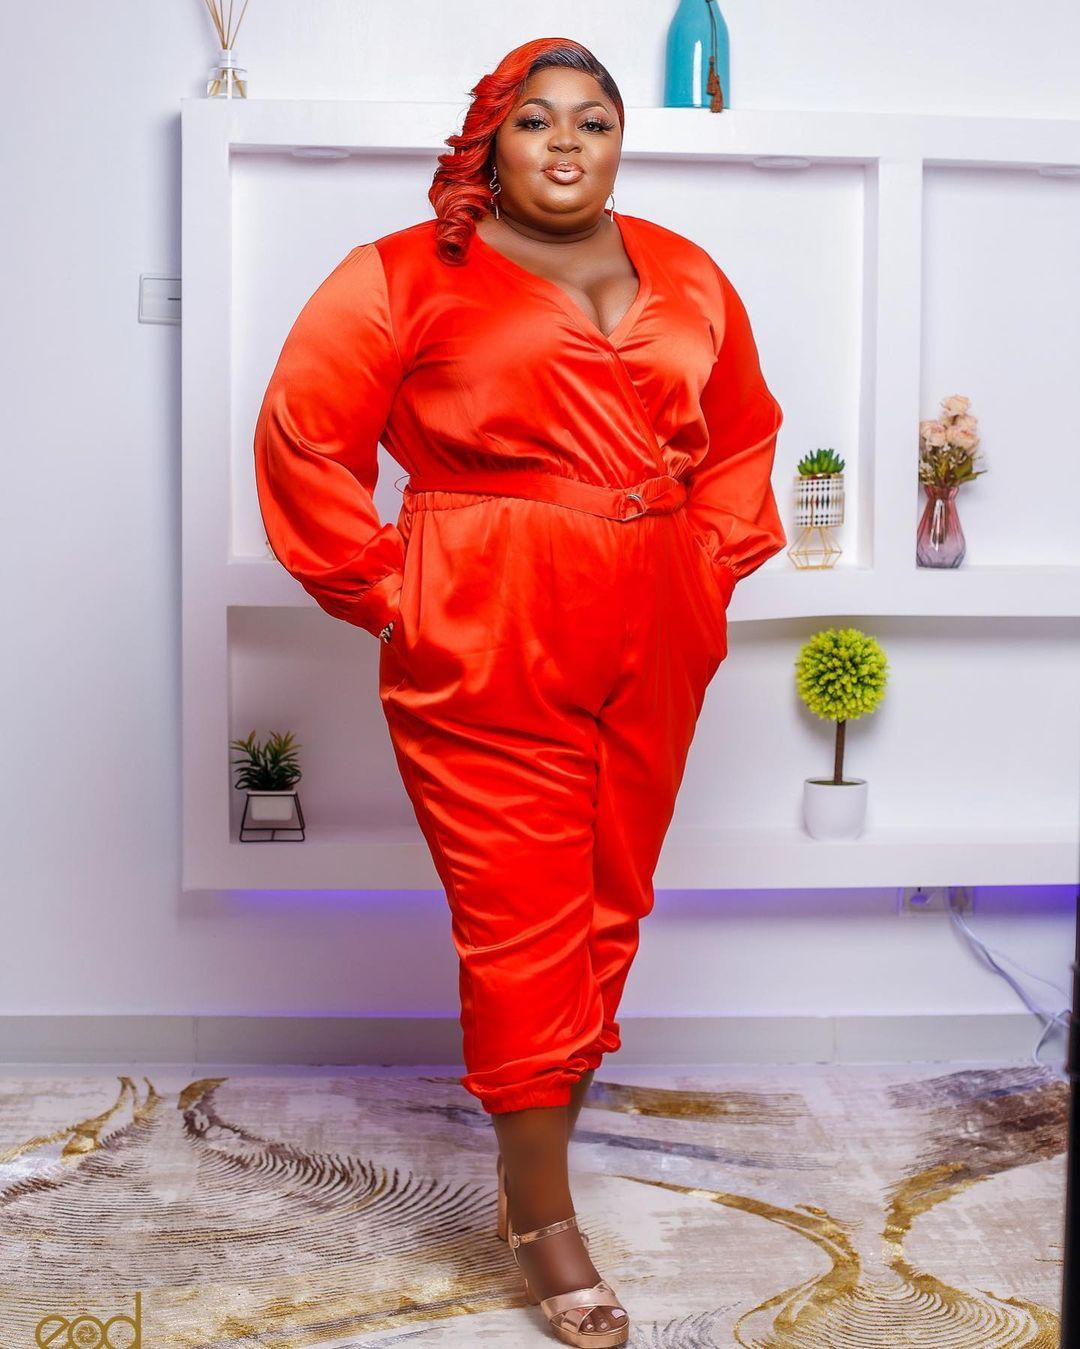 """Looking like LAWMA staff"" - Eniola Badmus dragged over outfit to Headies"